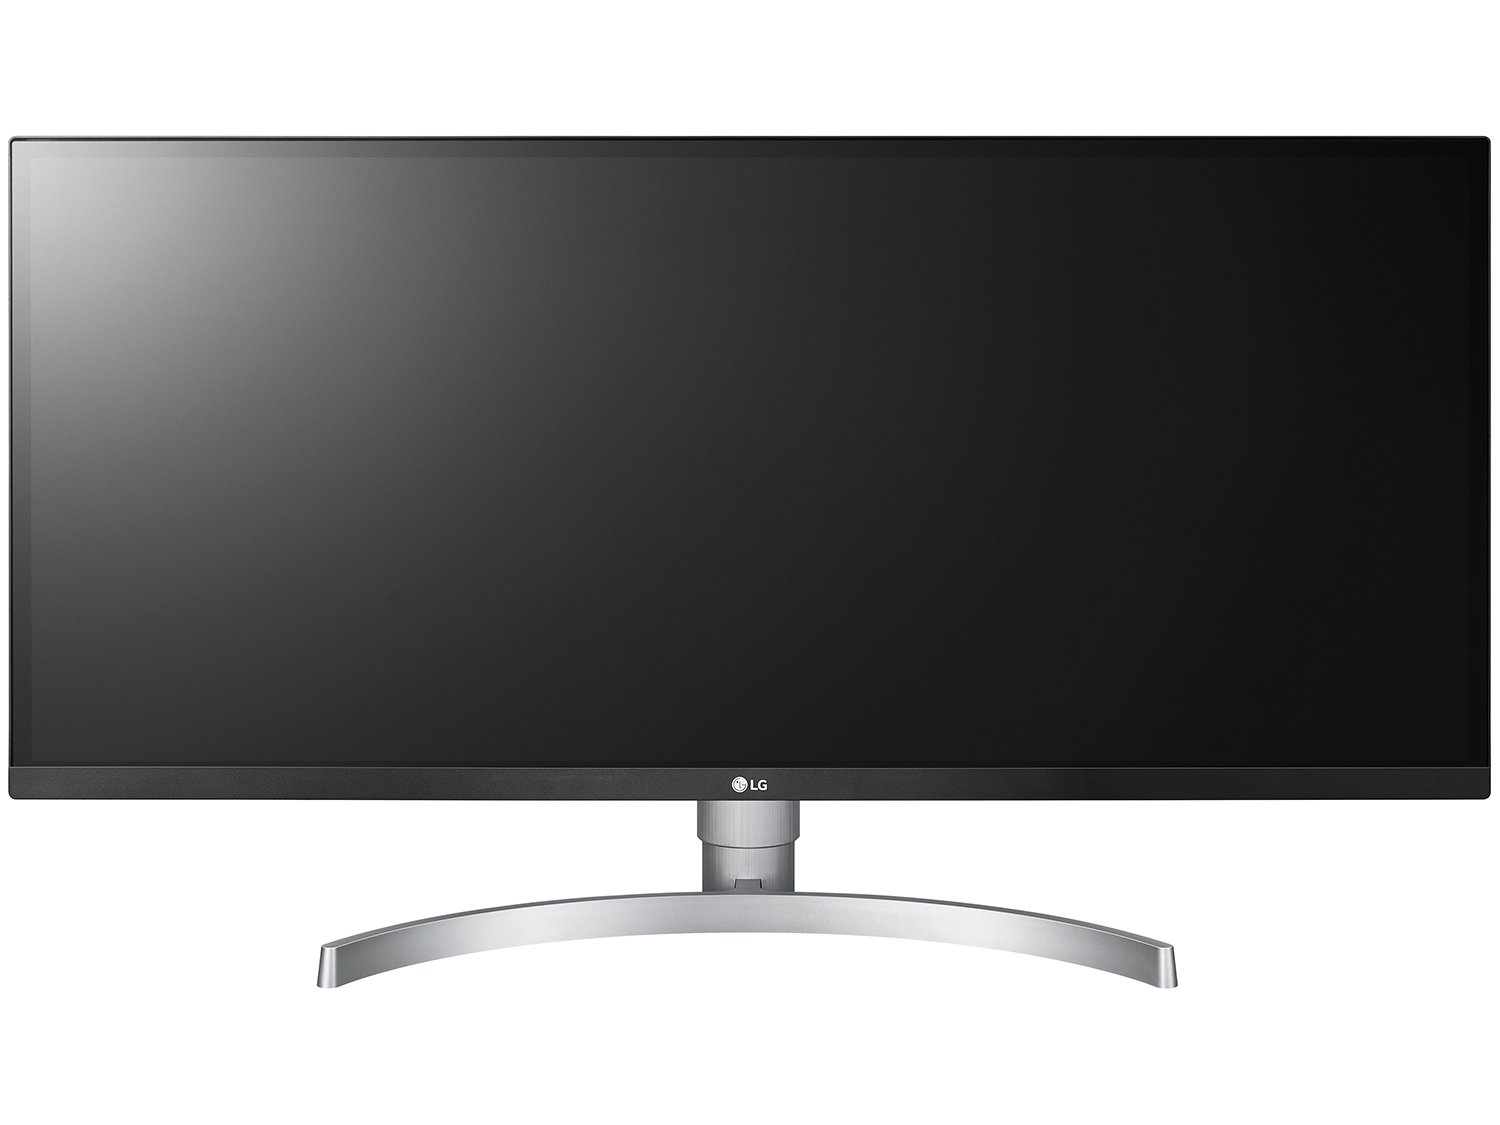 Foto 3 - Monitor para PC Full HD UltraWide LG LED IPS 34 - 34WK650